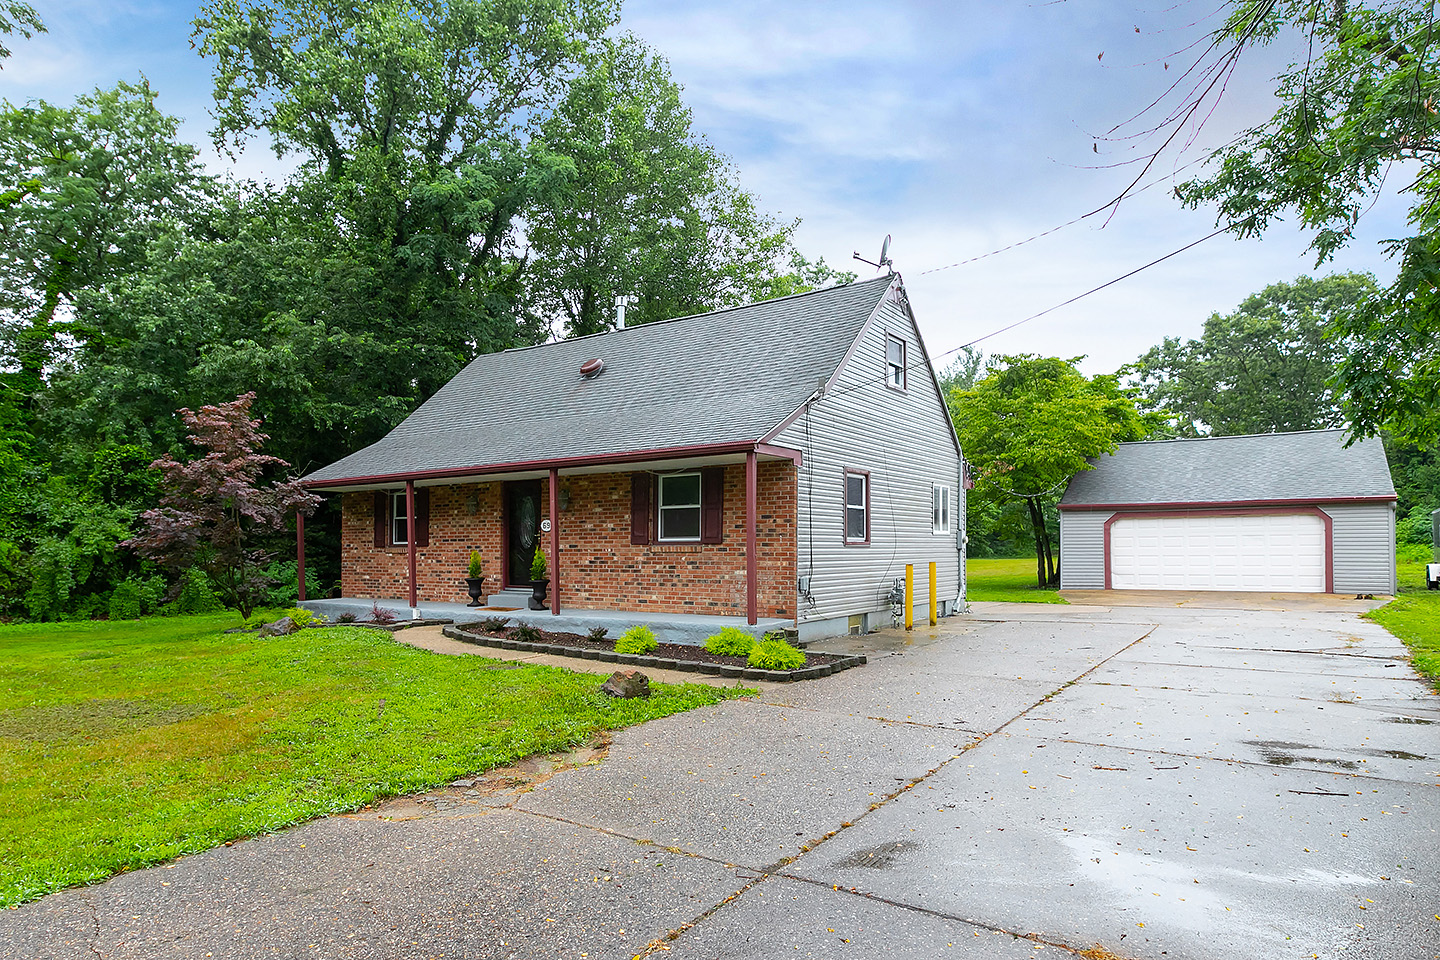 69 Plymouth Rd, Sicklerville NJ 08081